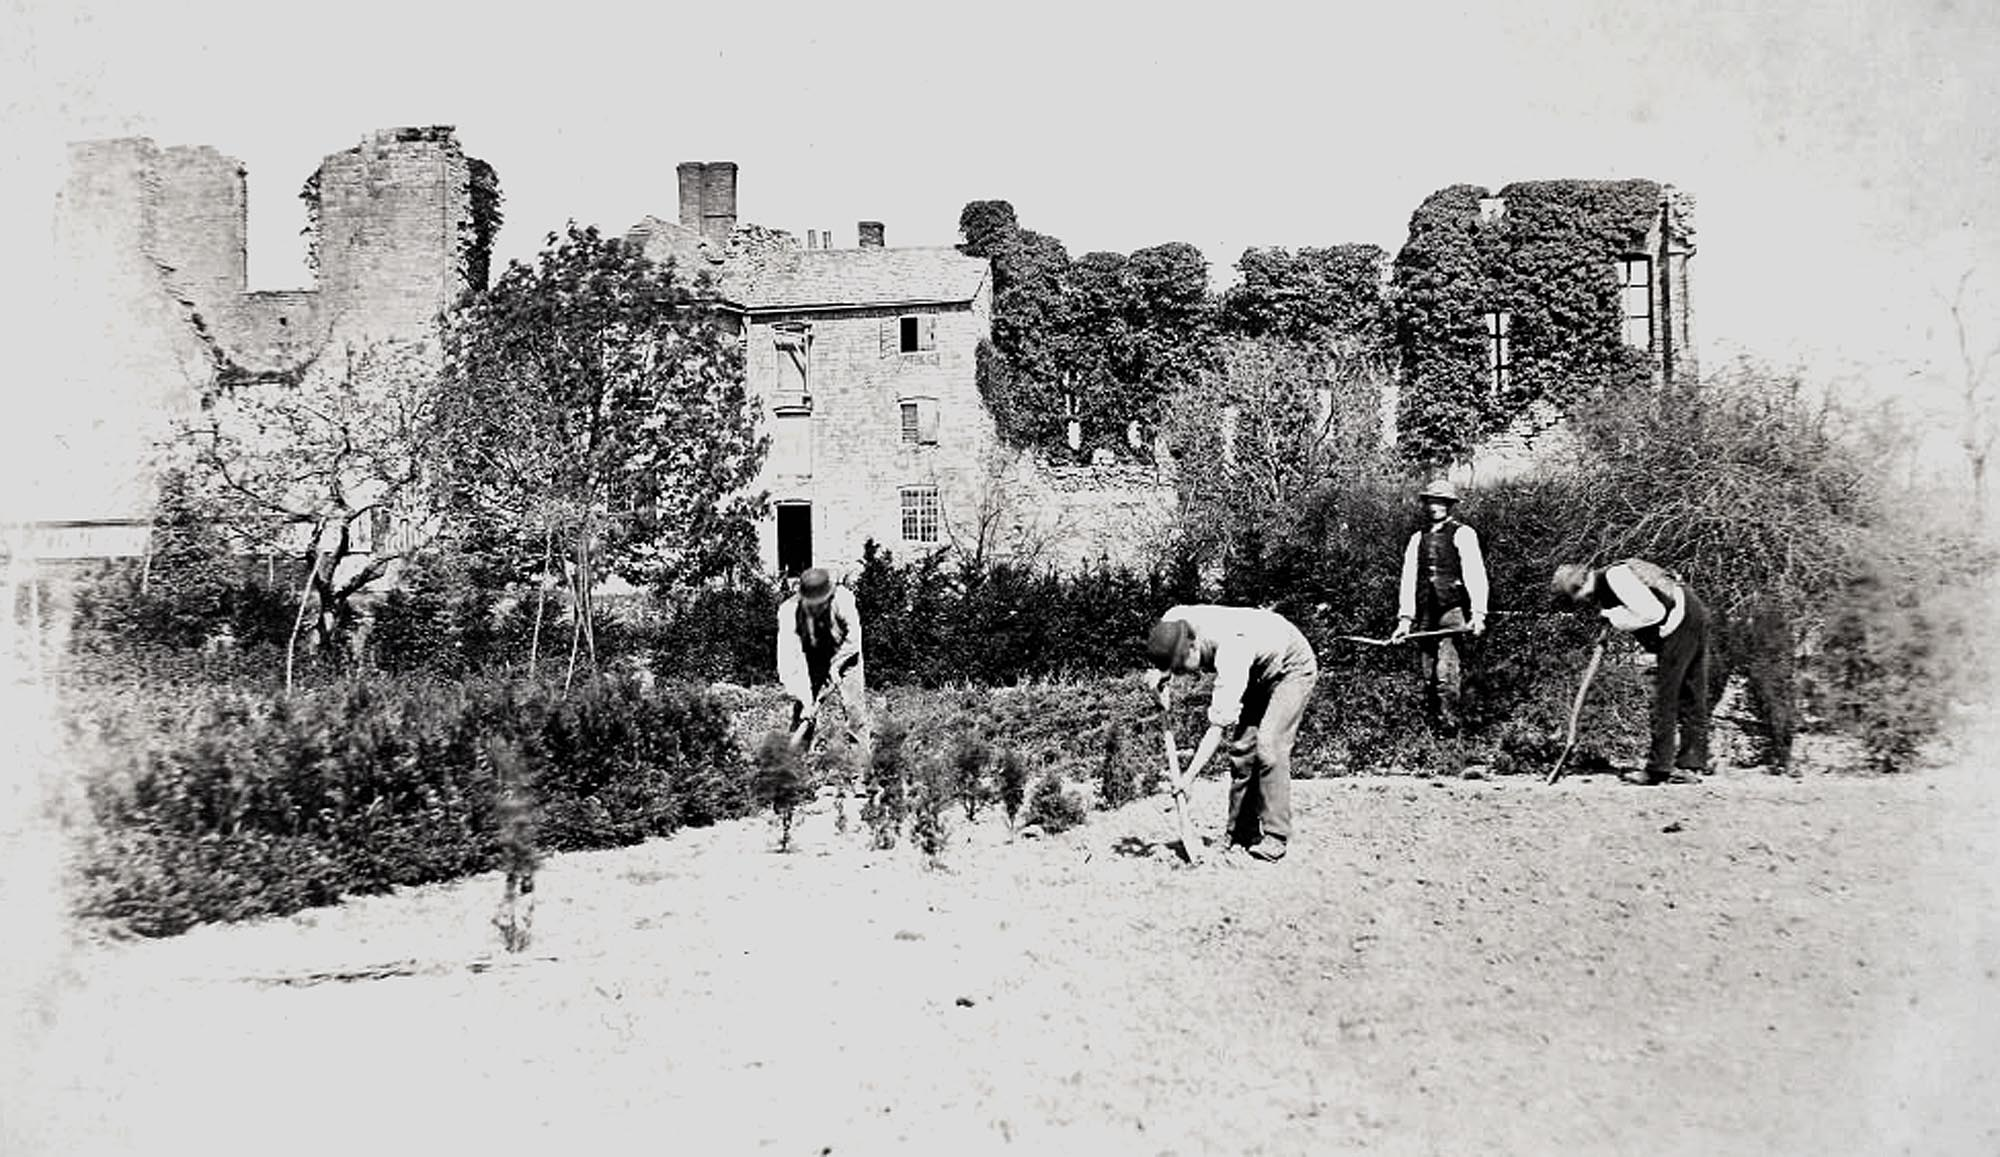 Gardeners working near the Cavendish House Ruins in Abbey Park, circa 1900. This section of the park was a plant nursery until the 1930s -